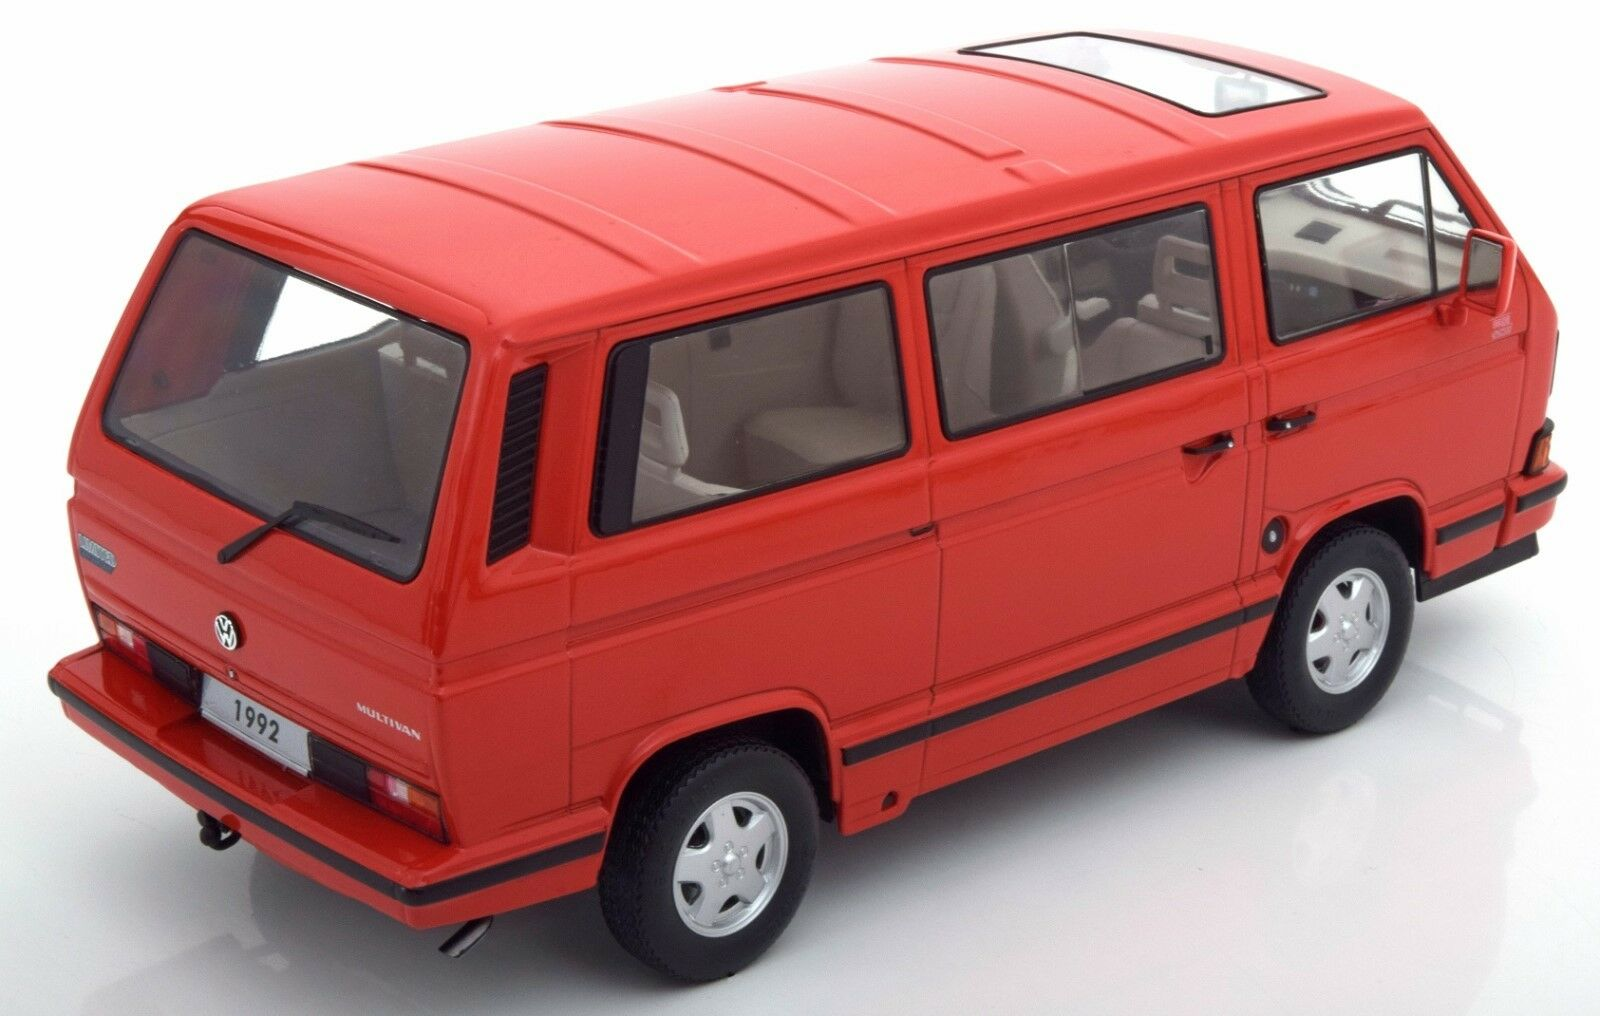 VW T3 Multivan  Red    1992 (KK Scale 1 18   180142) cd4cb7